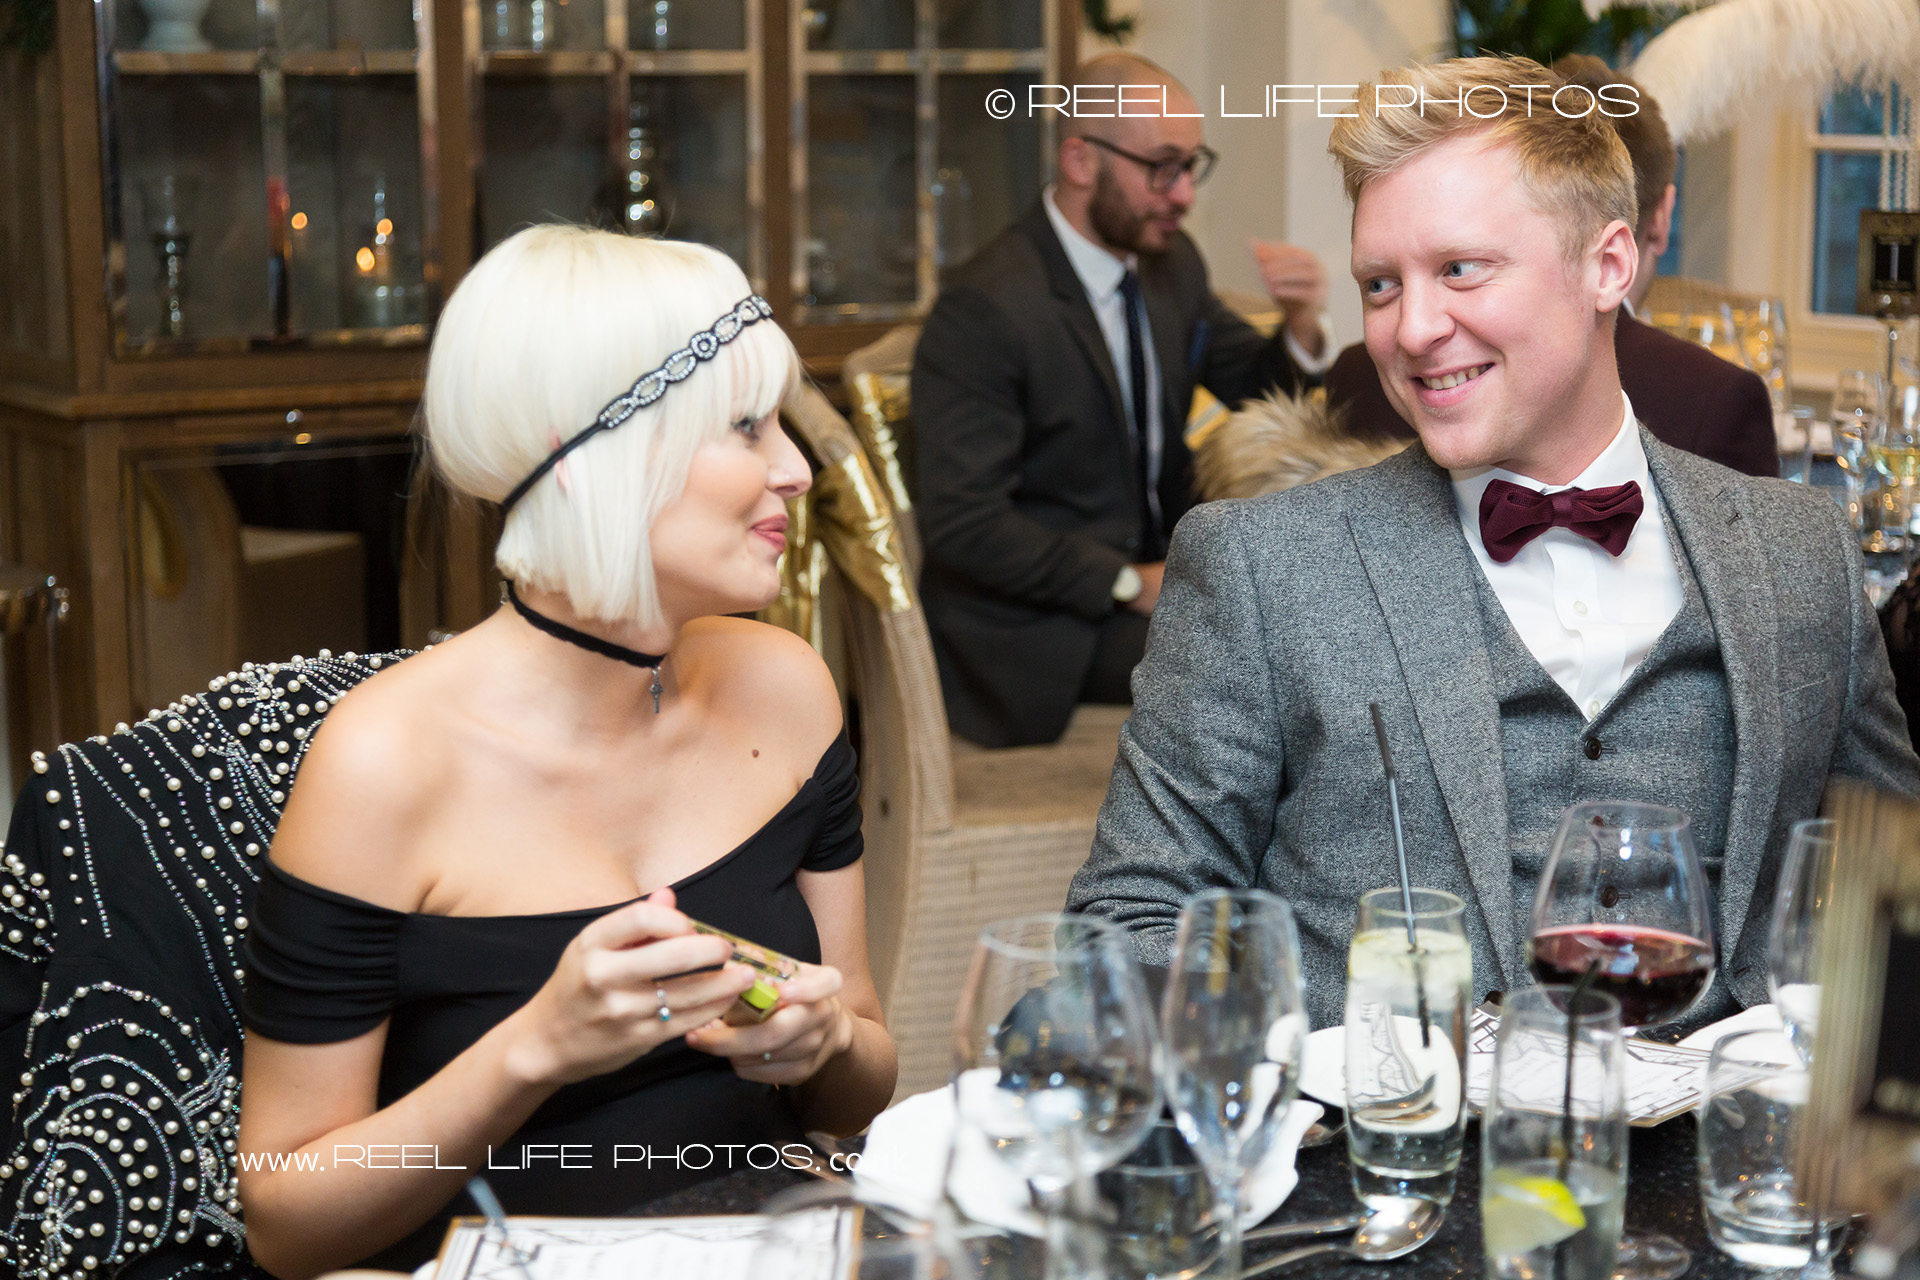 Wedding guests at Great Gatsby wedding reception